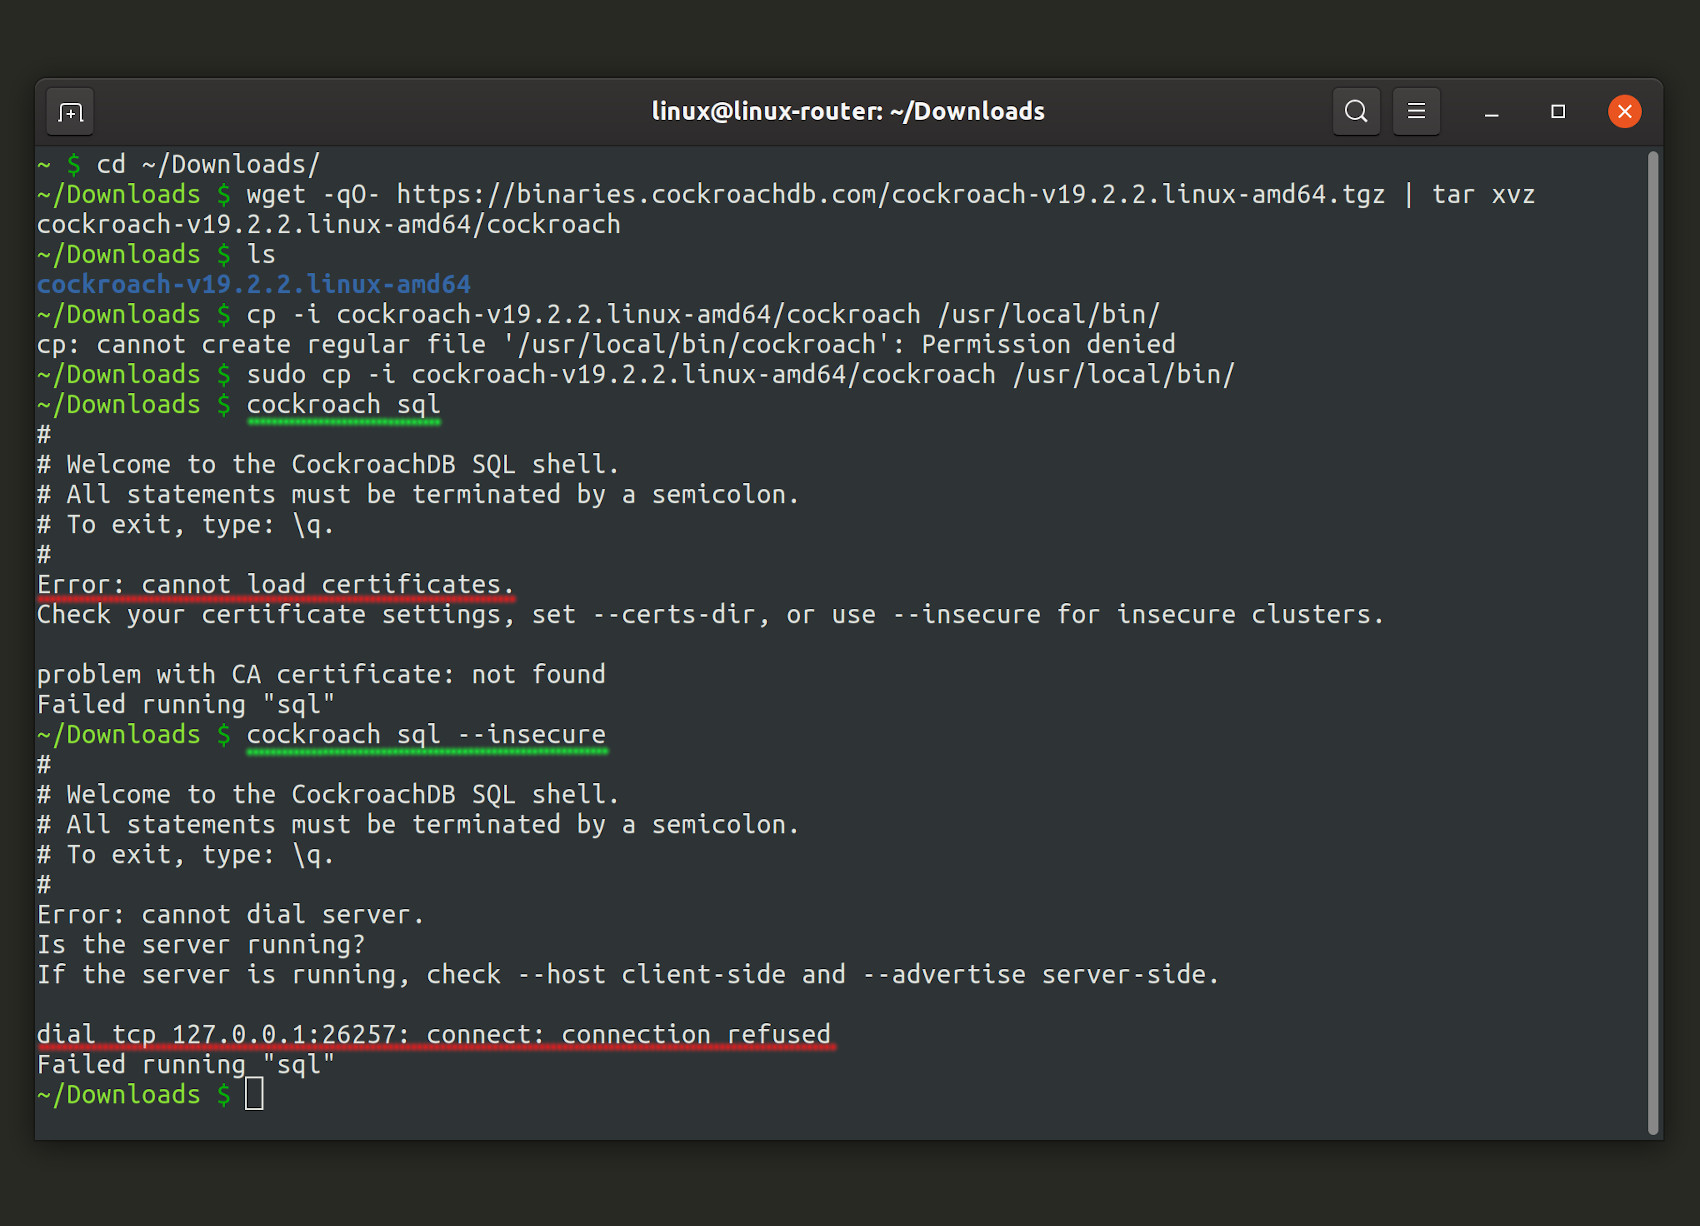 Screenshot of the cockroach sql command for the CockroachDB client refusing to connect